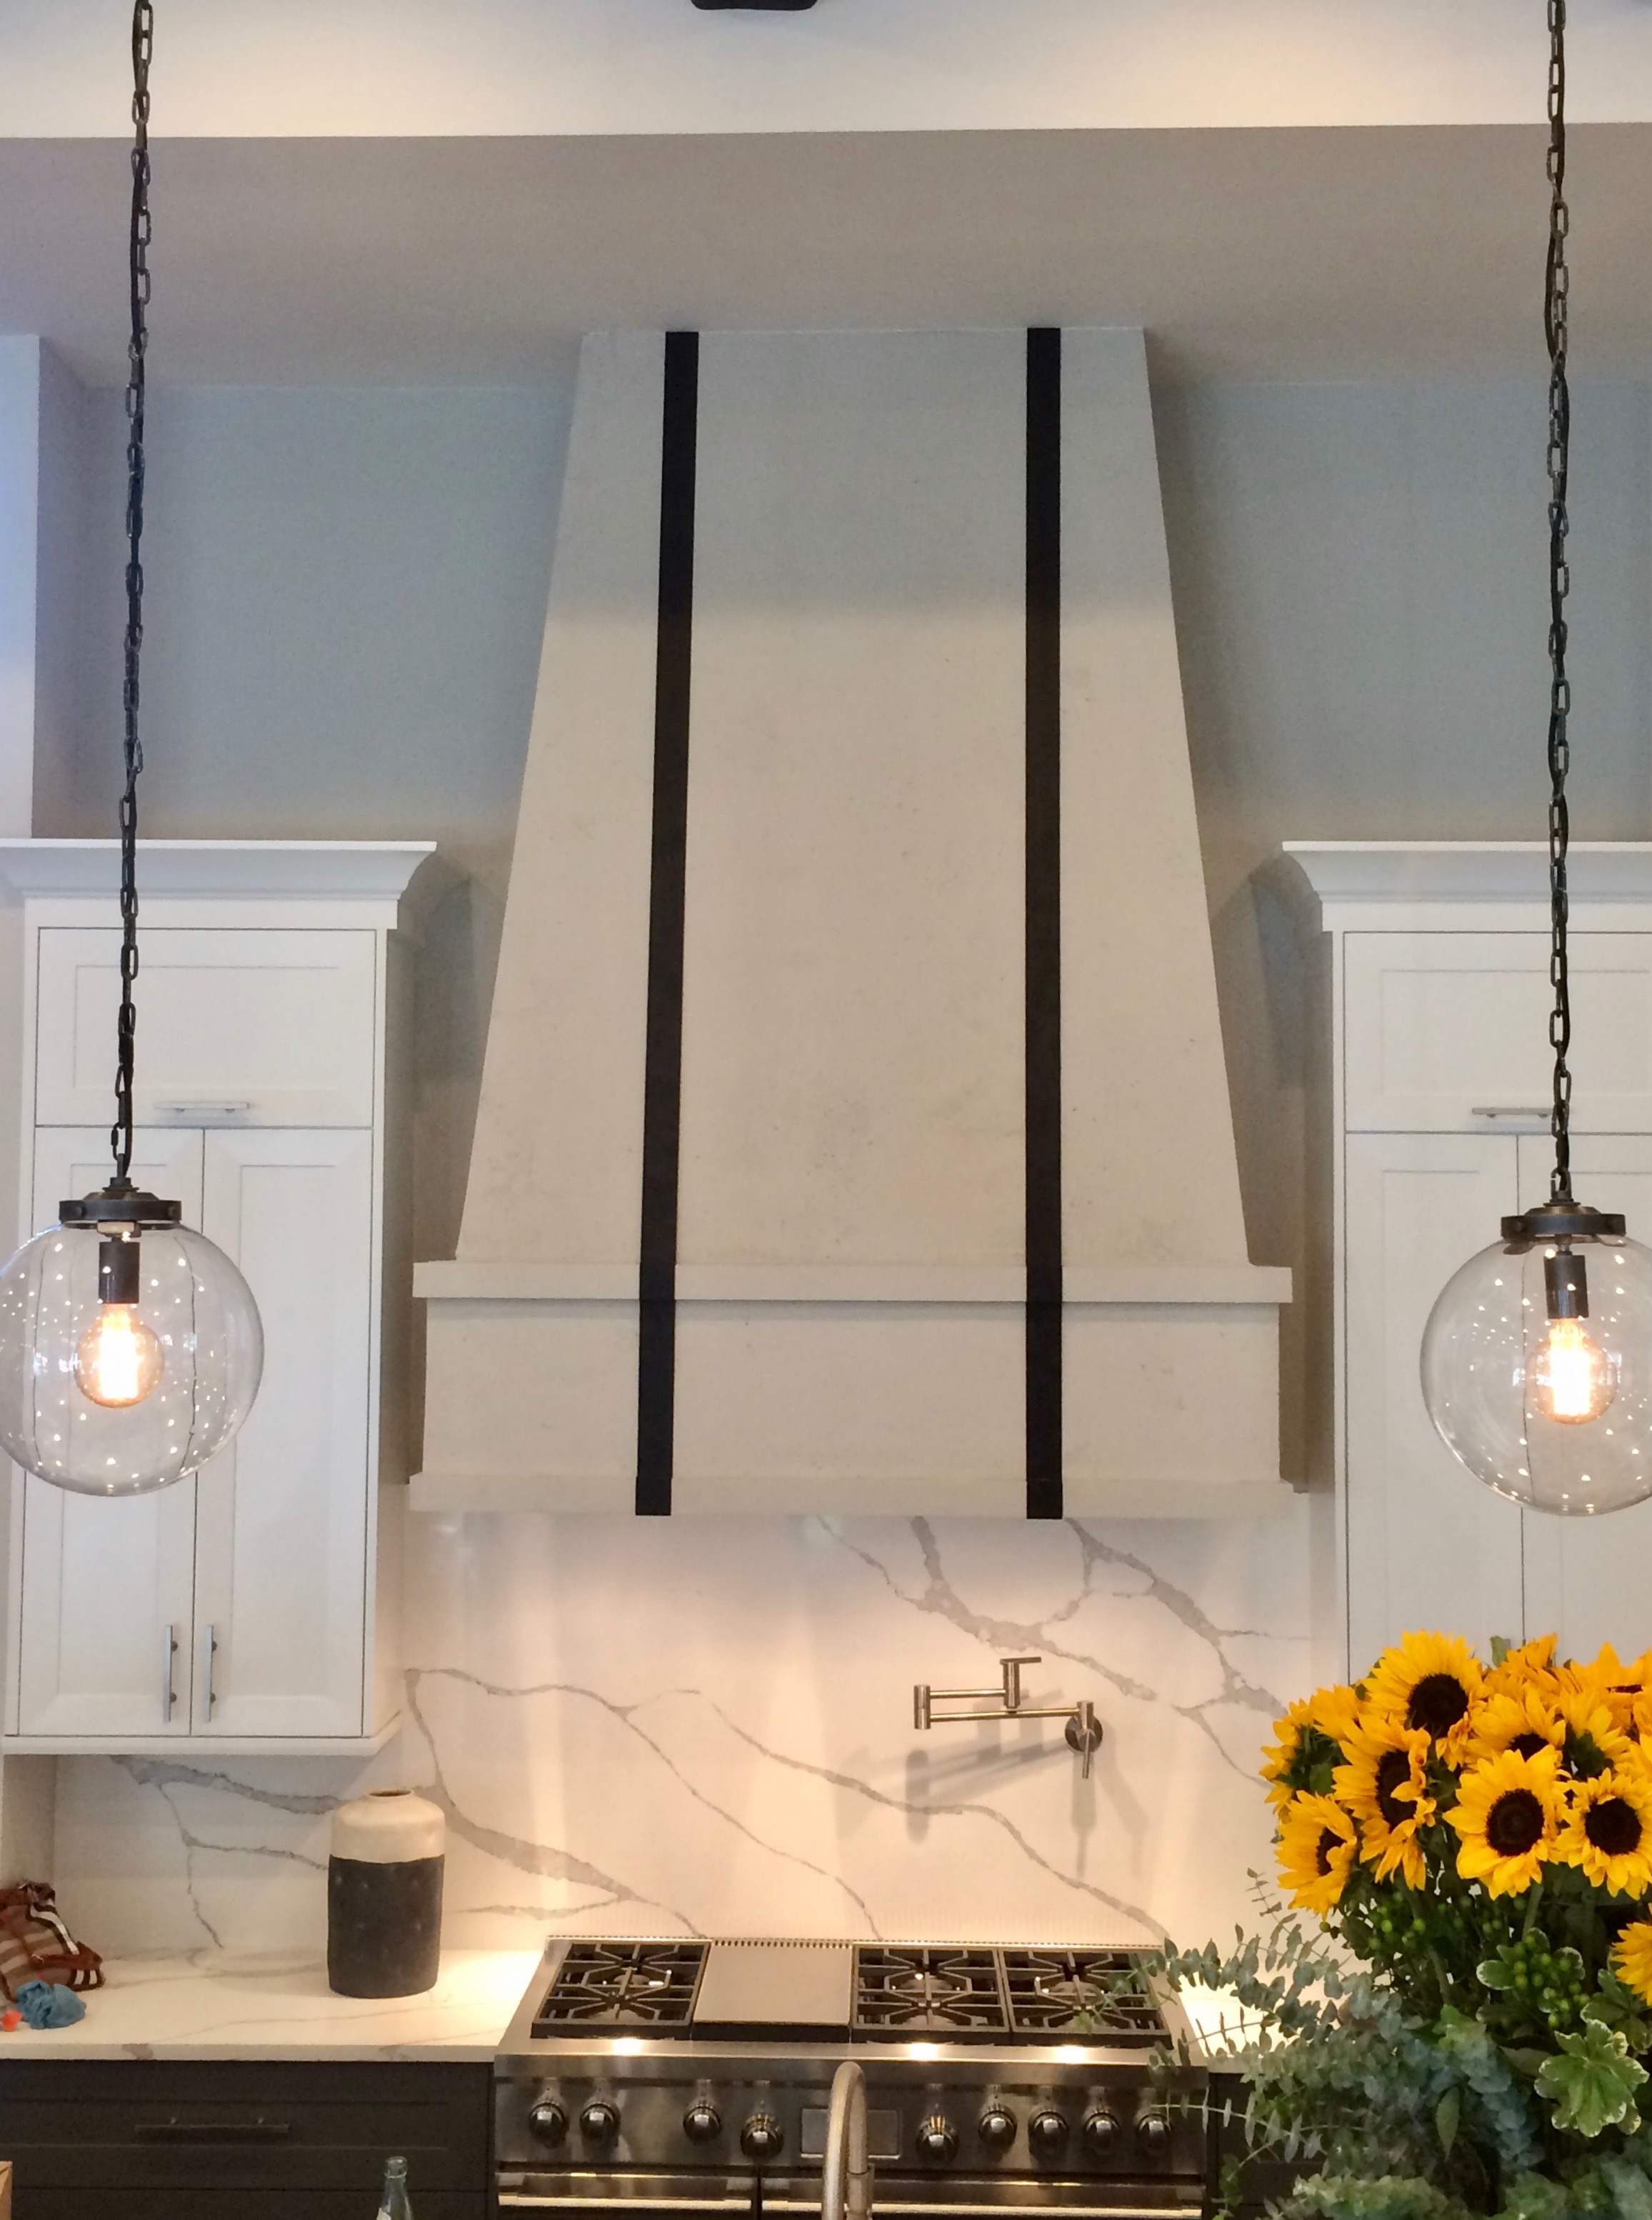 Limestone Hood Vent with Custom Metal Straps.  Dimensions: 7.5'H x 5'W